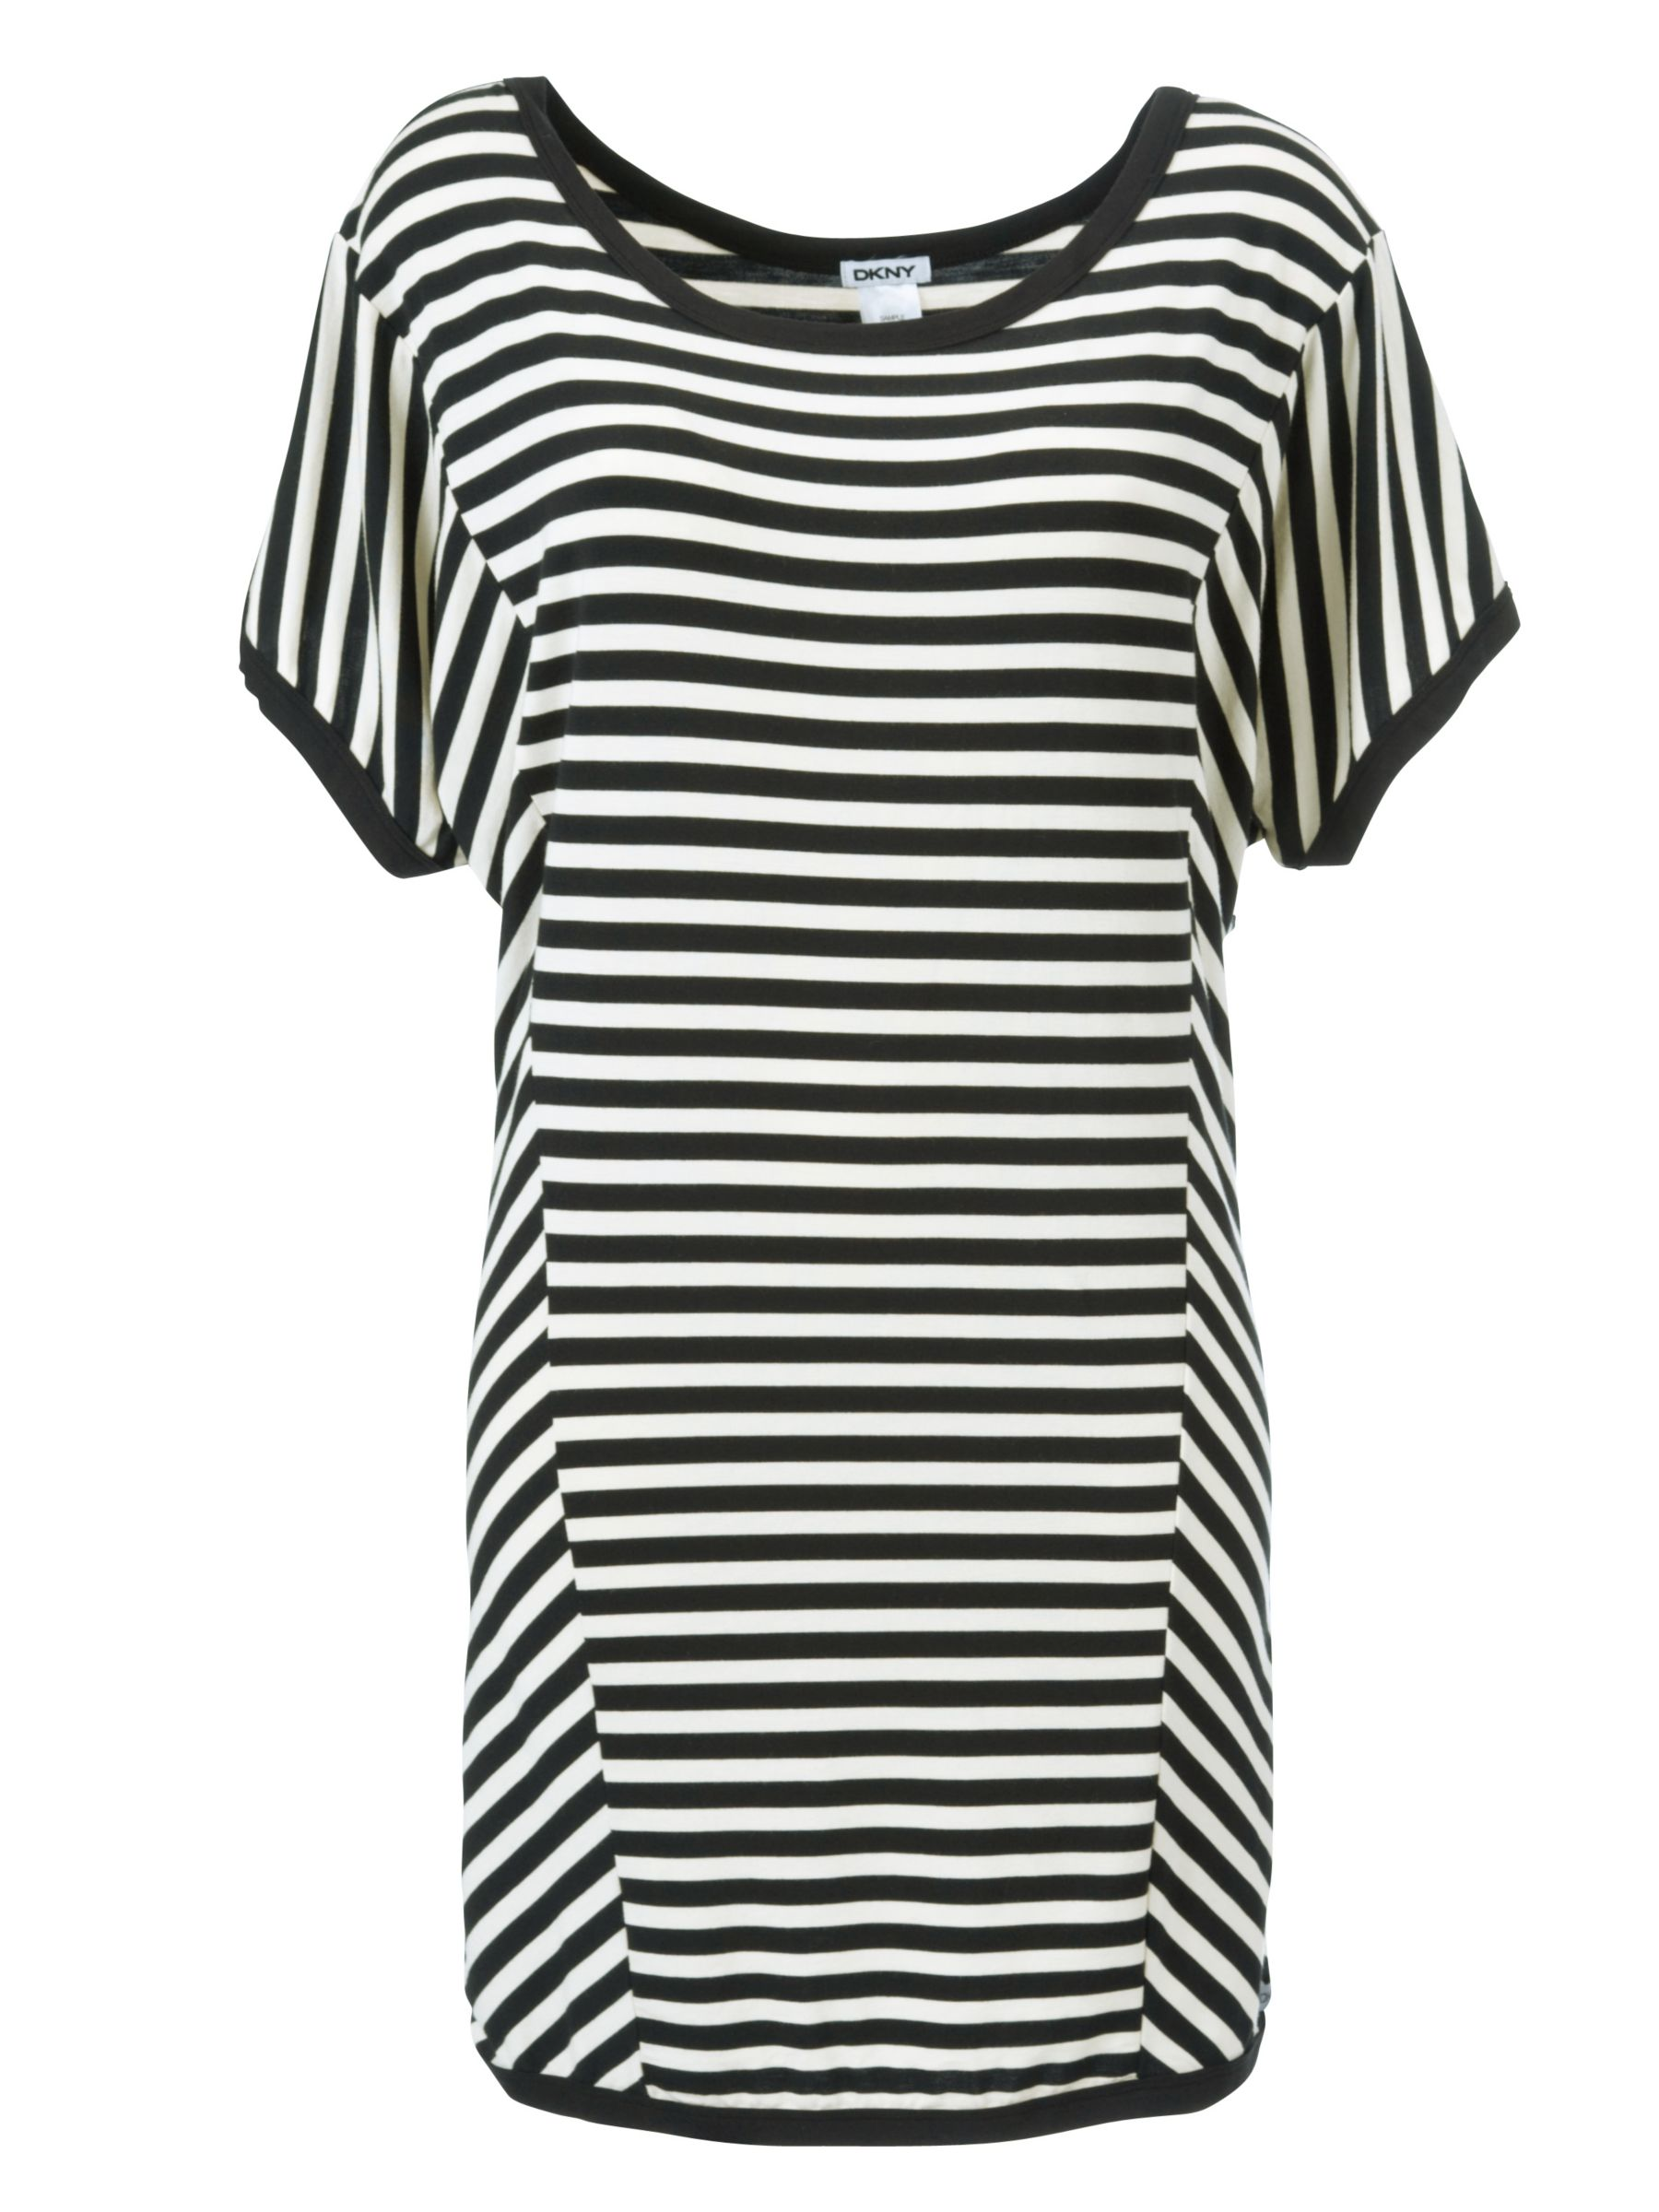 DKNY Modern Times Stipe Nightdress, Multi